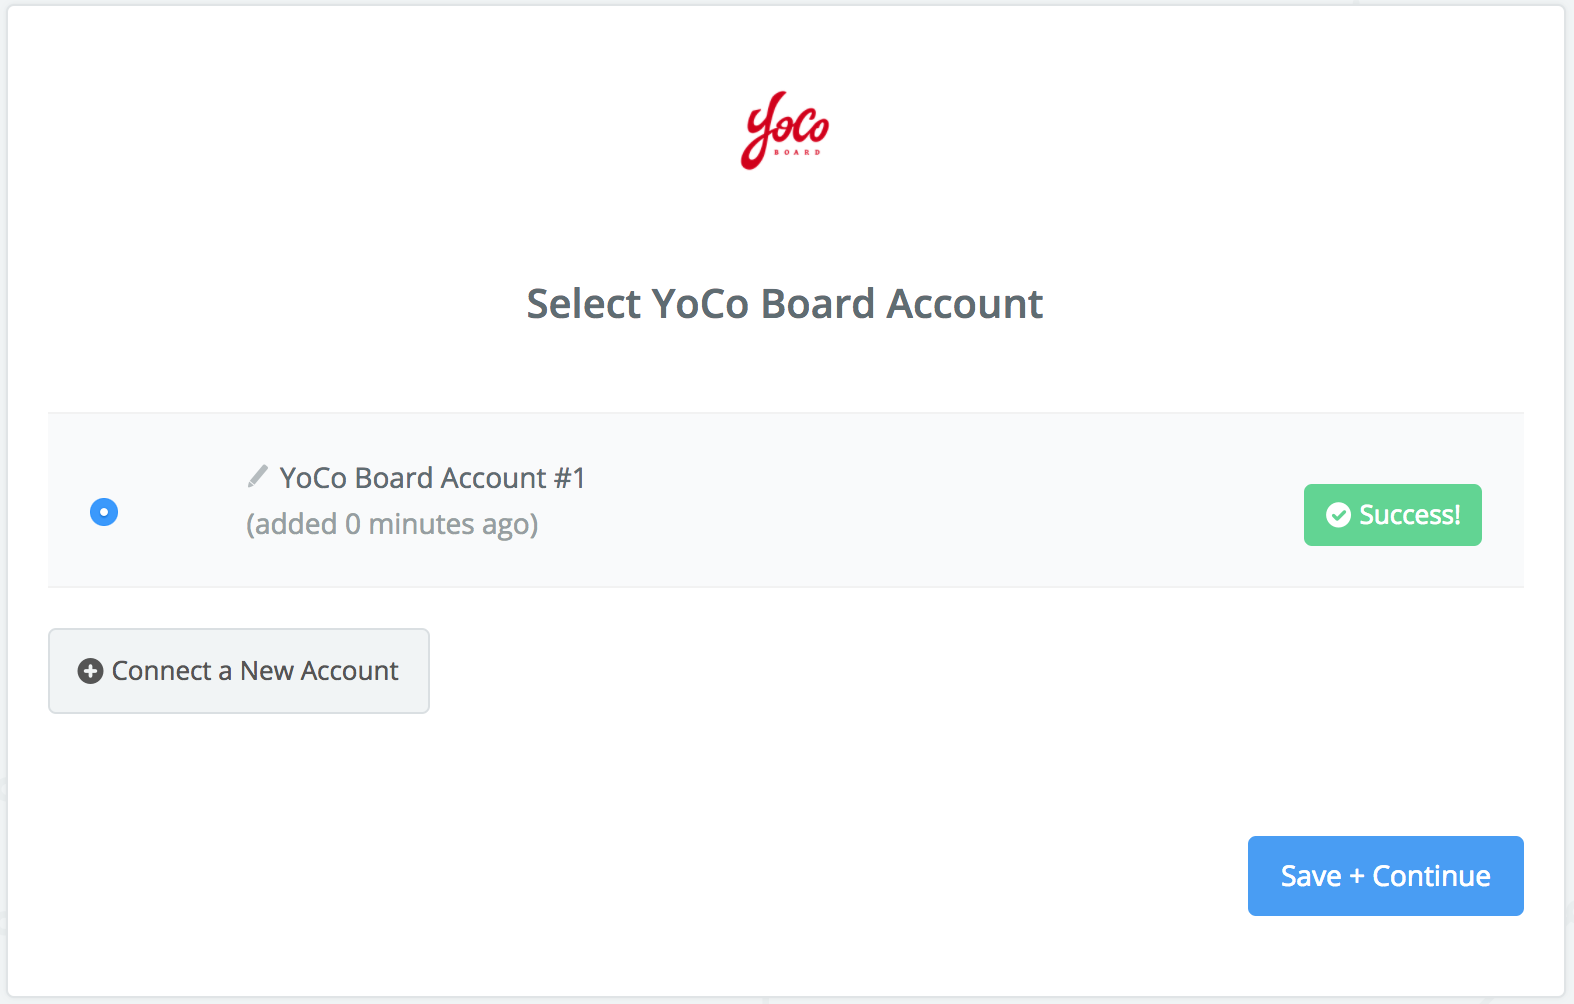 YoCo Boardconnection successfull